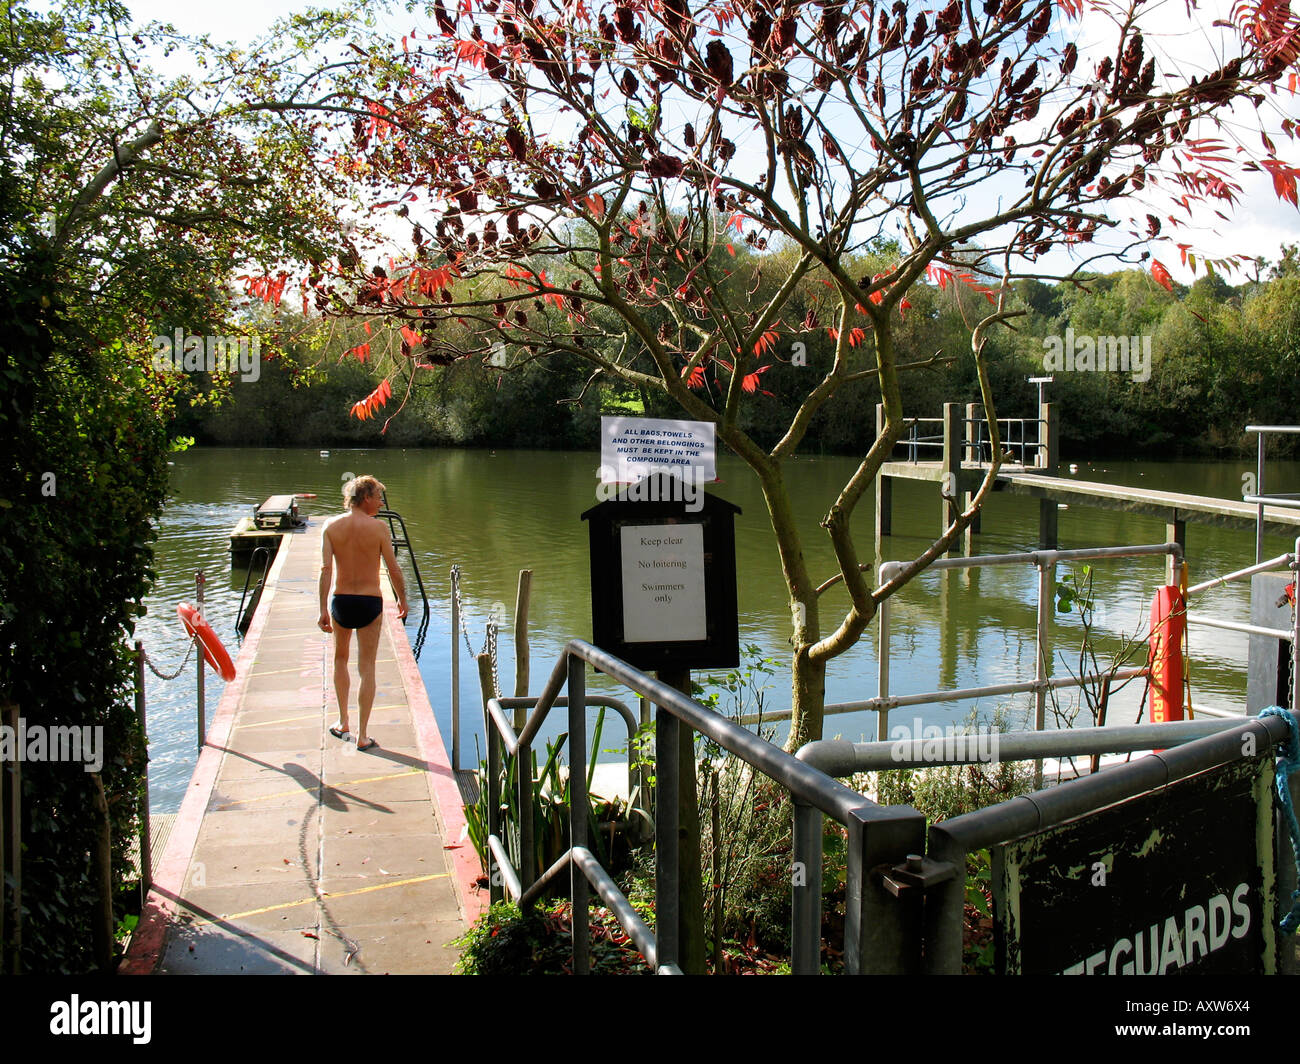 A man at the mens swimming pond on hampstead heath london england stock photo royalty free for Hampstead heath park swimming pool